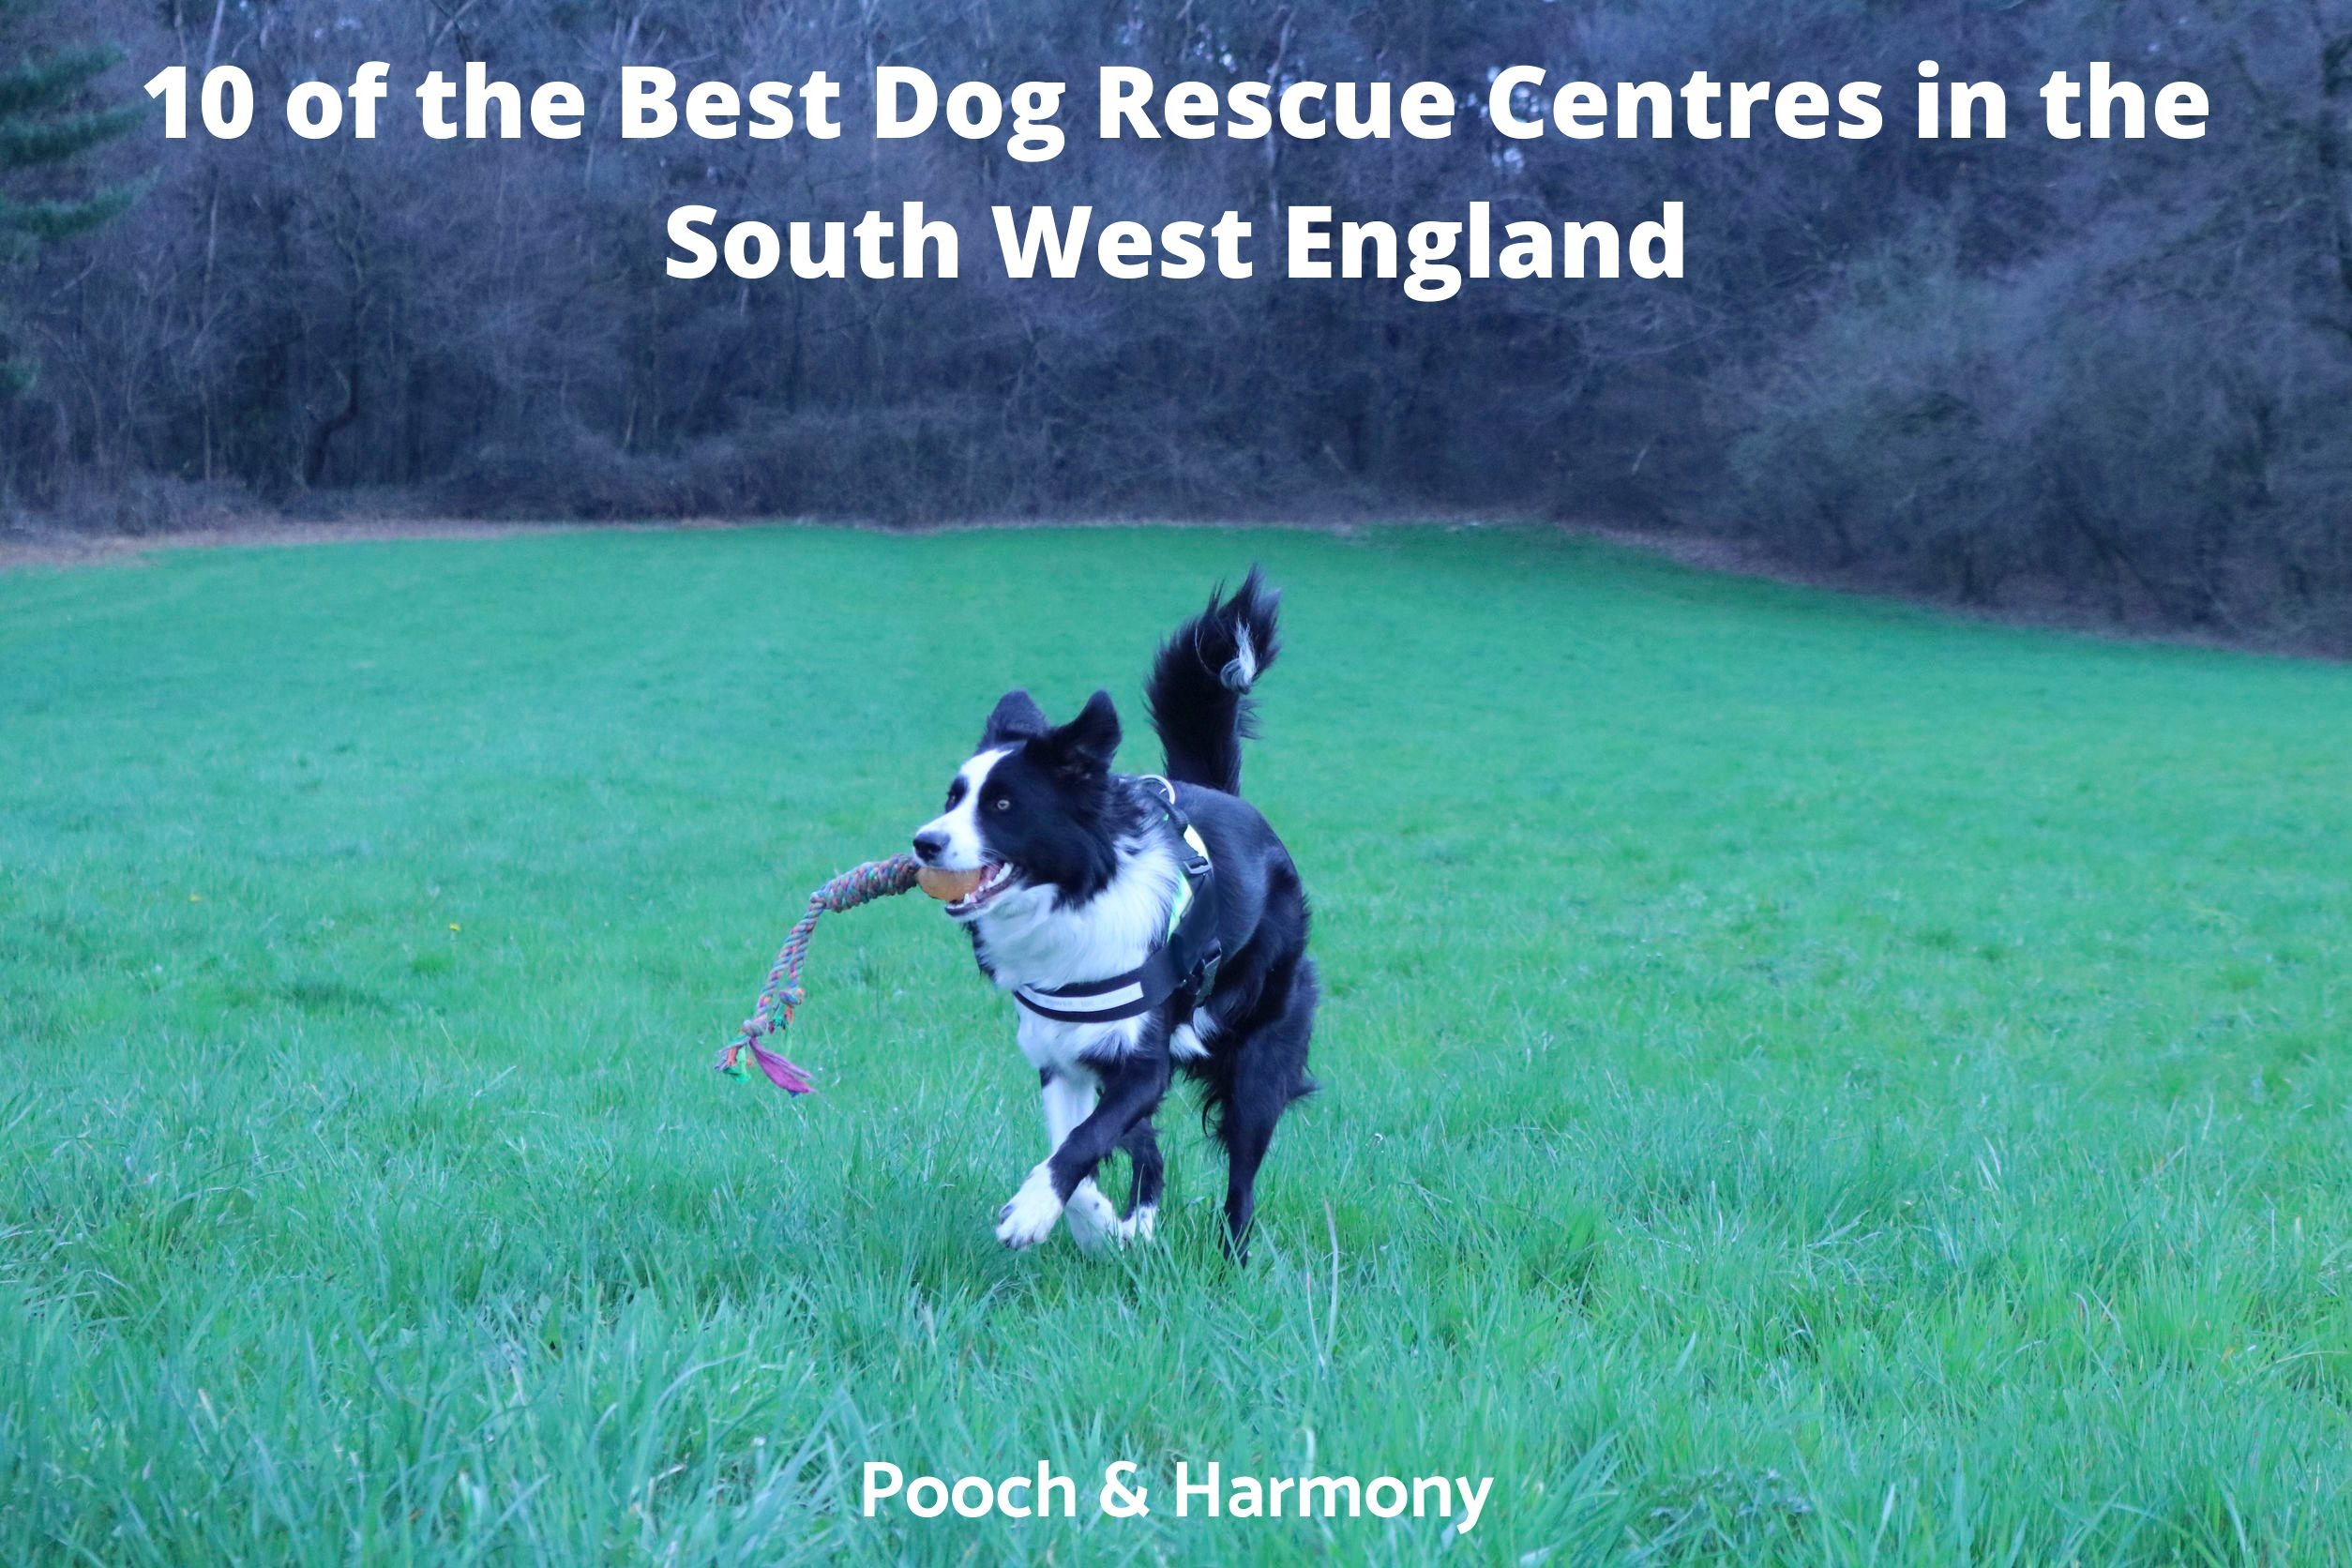 Dog Rescue Centres in the South West England